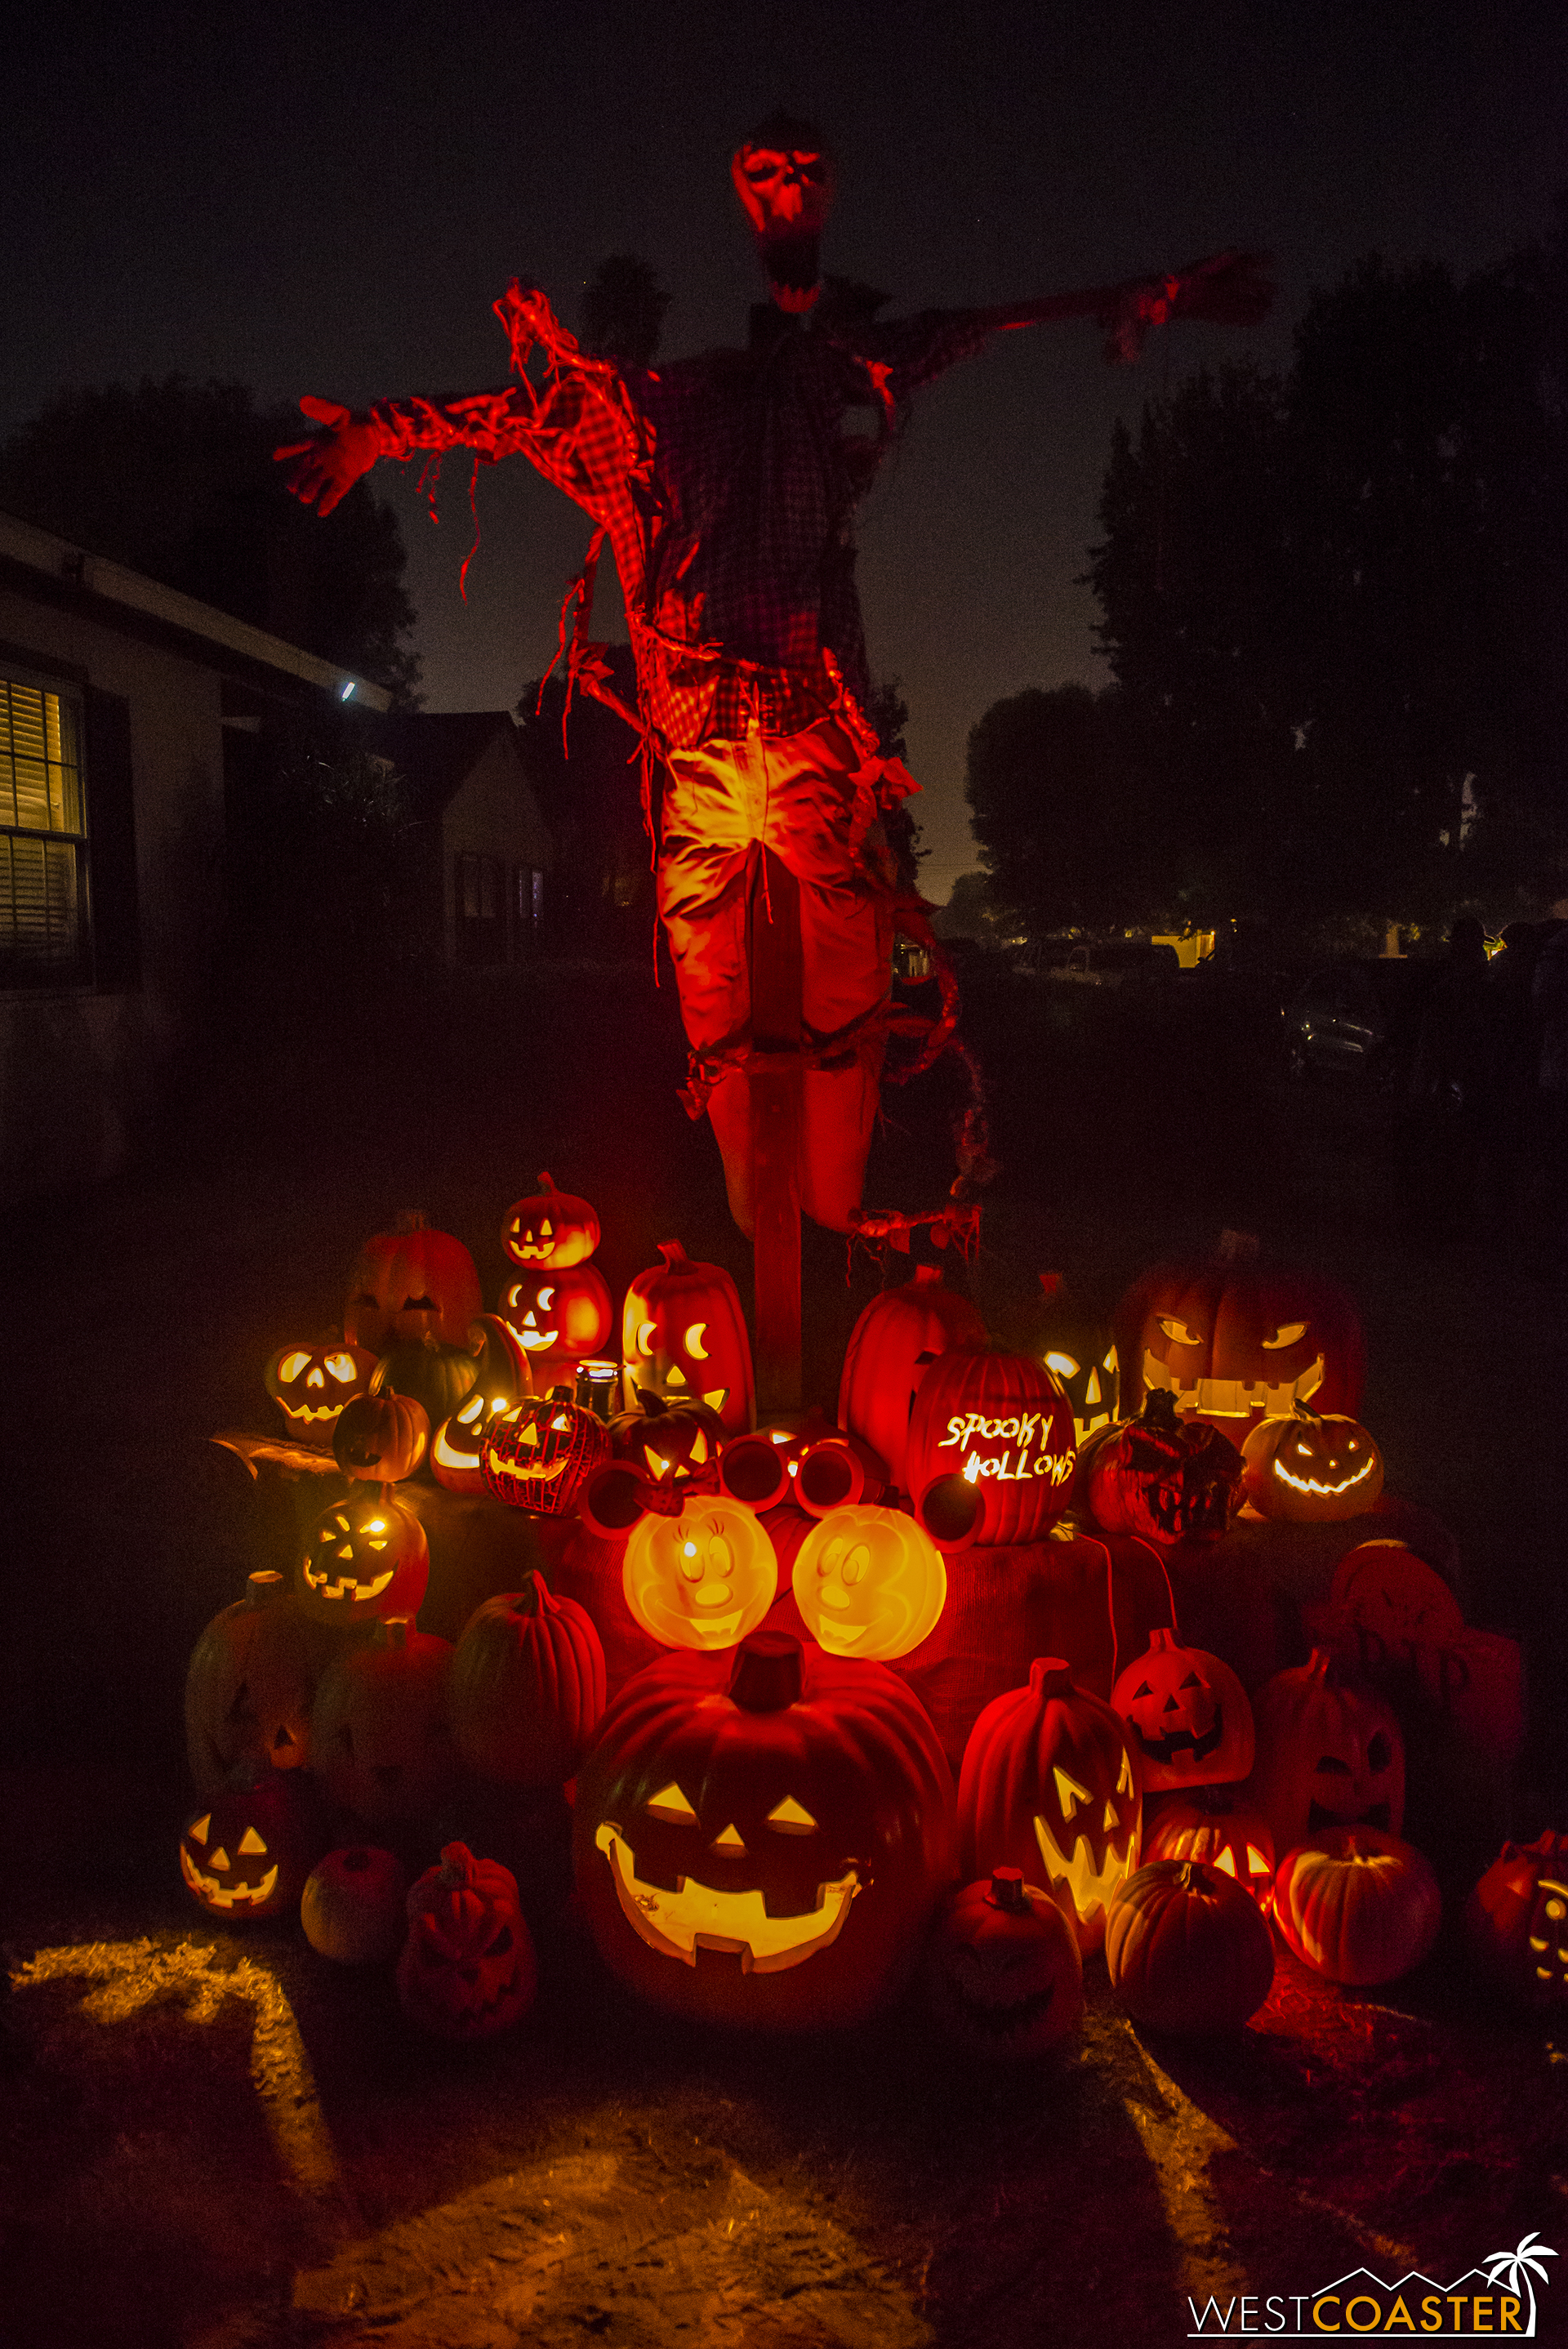 An elaborate jack-o-lantern display showcases the love of Halloween and all things fun that the creators have.